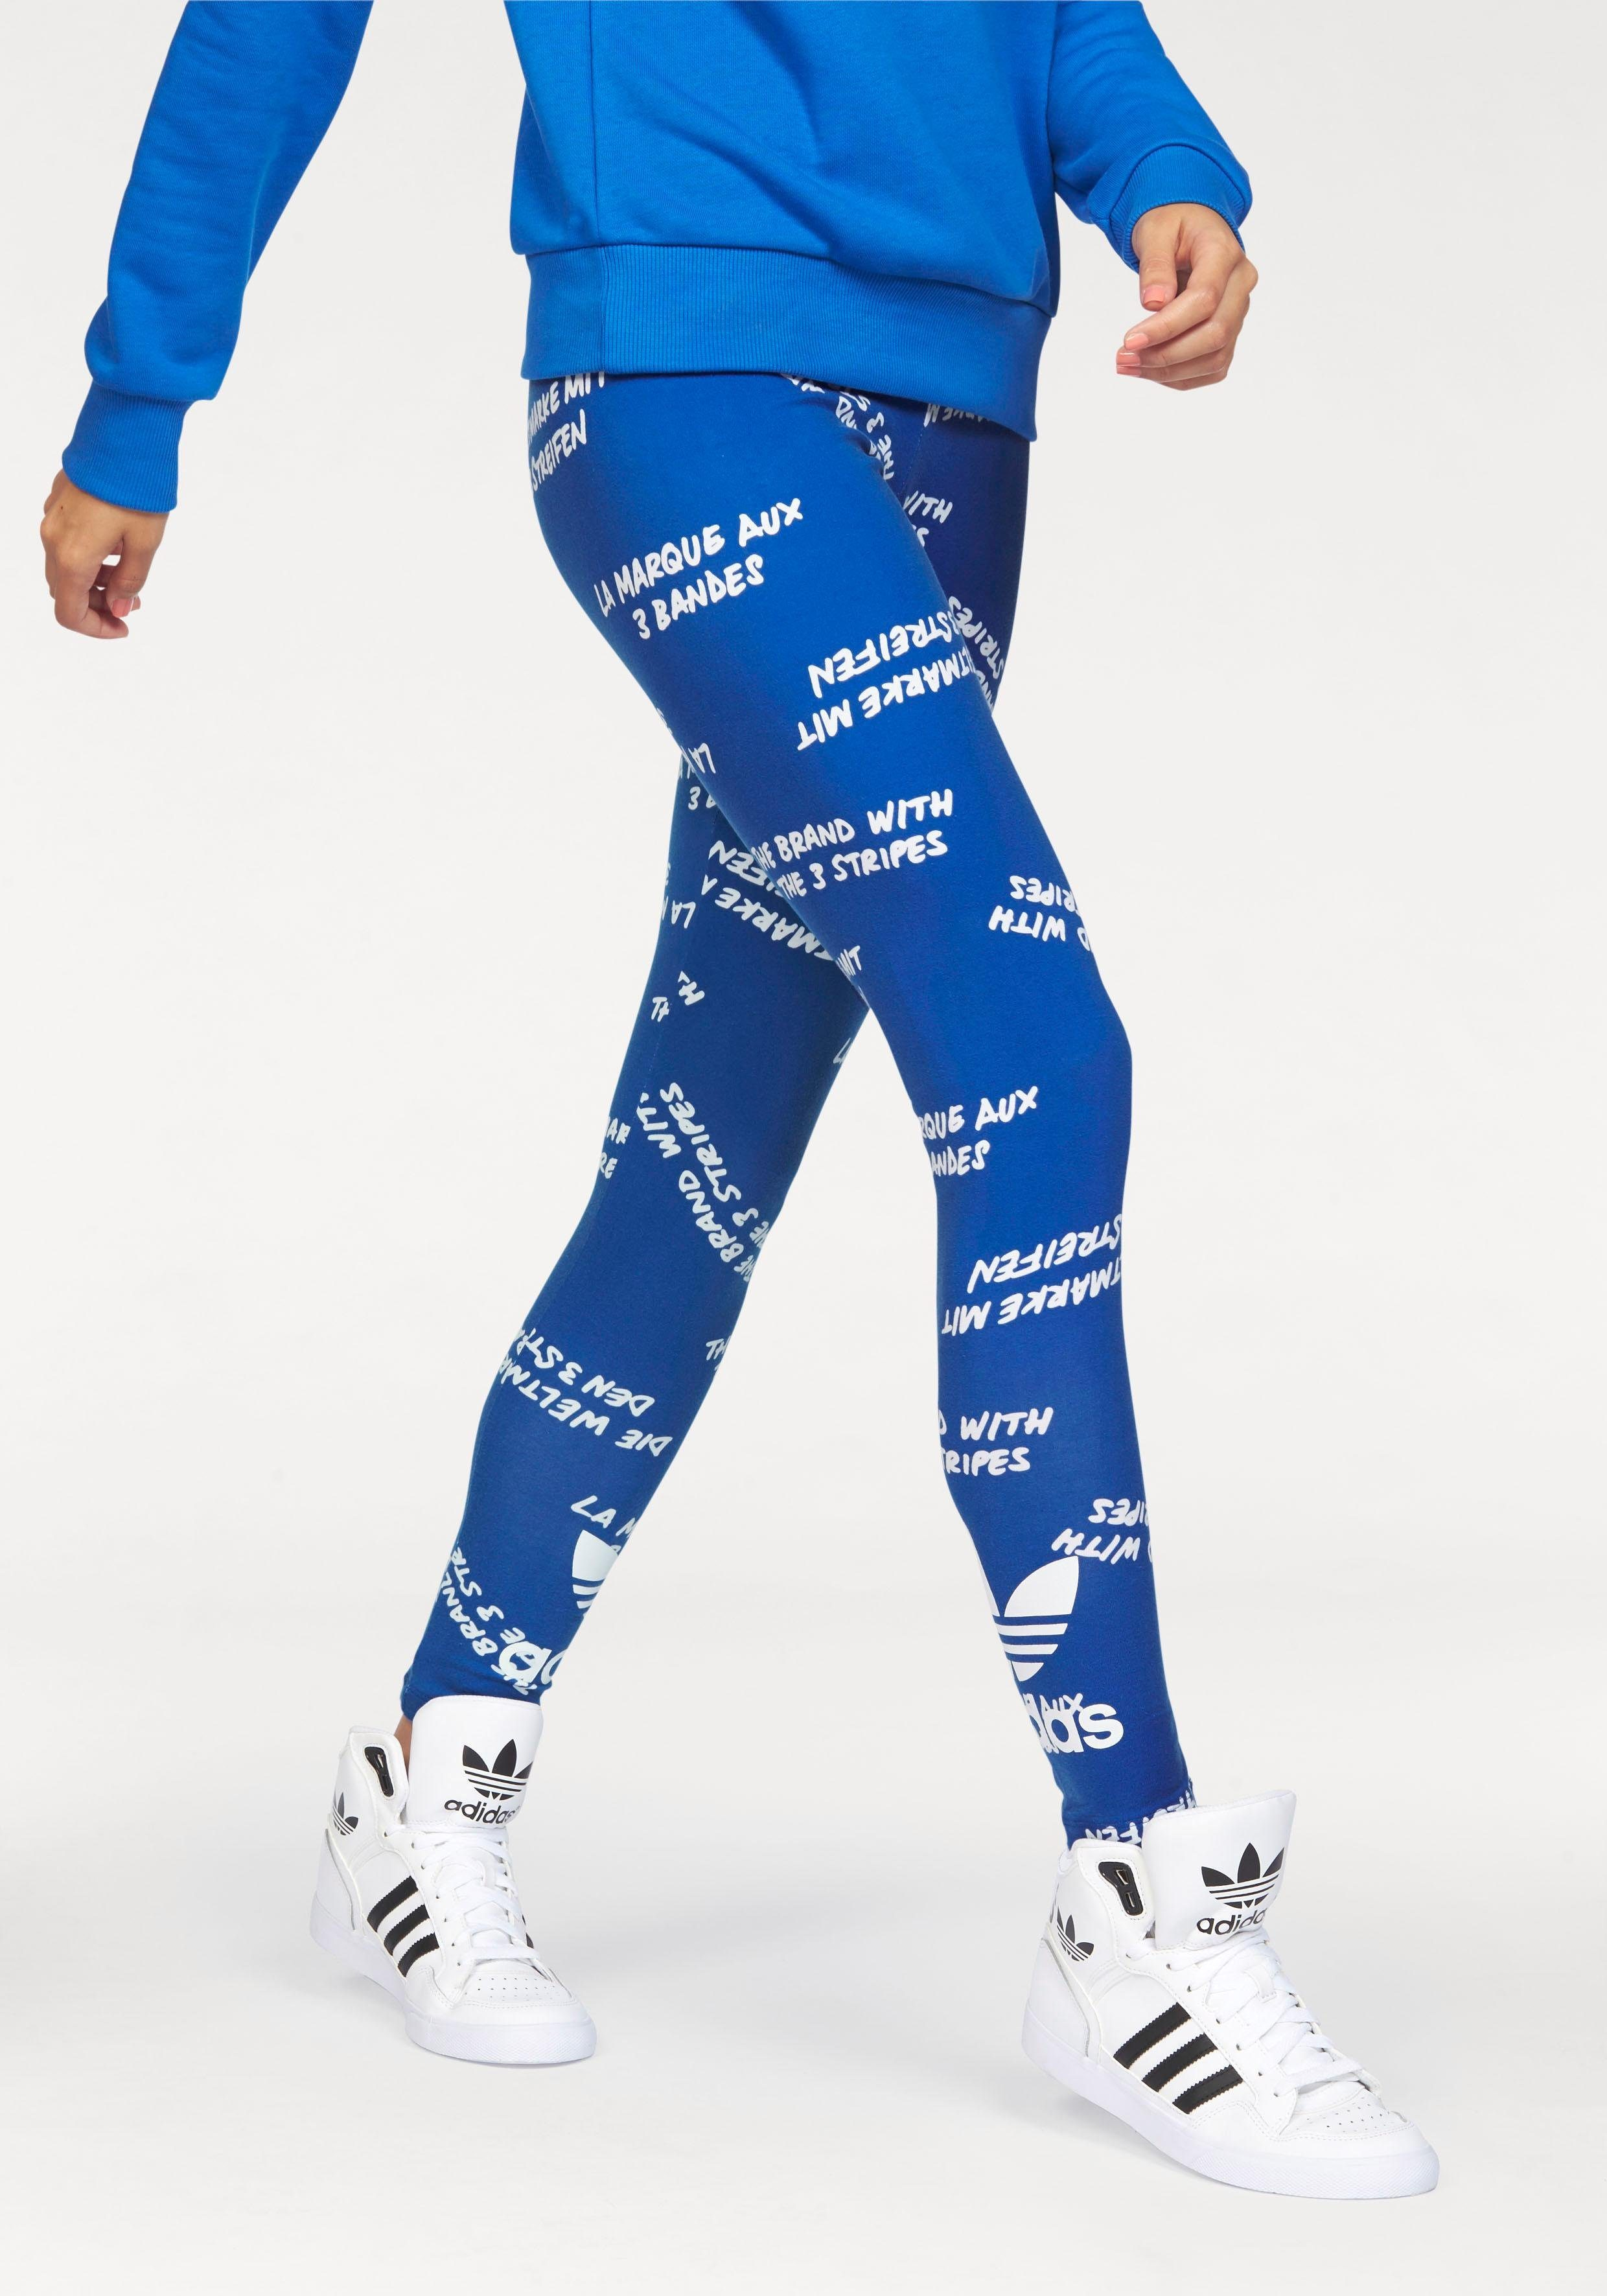 Adidas Originals Damen Klassisch 3 Streifen Tight Fit Leggings Stretch blau weiß